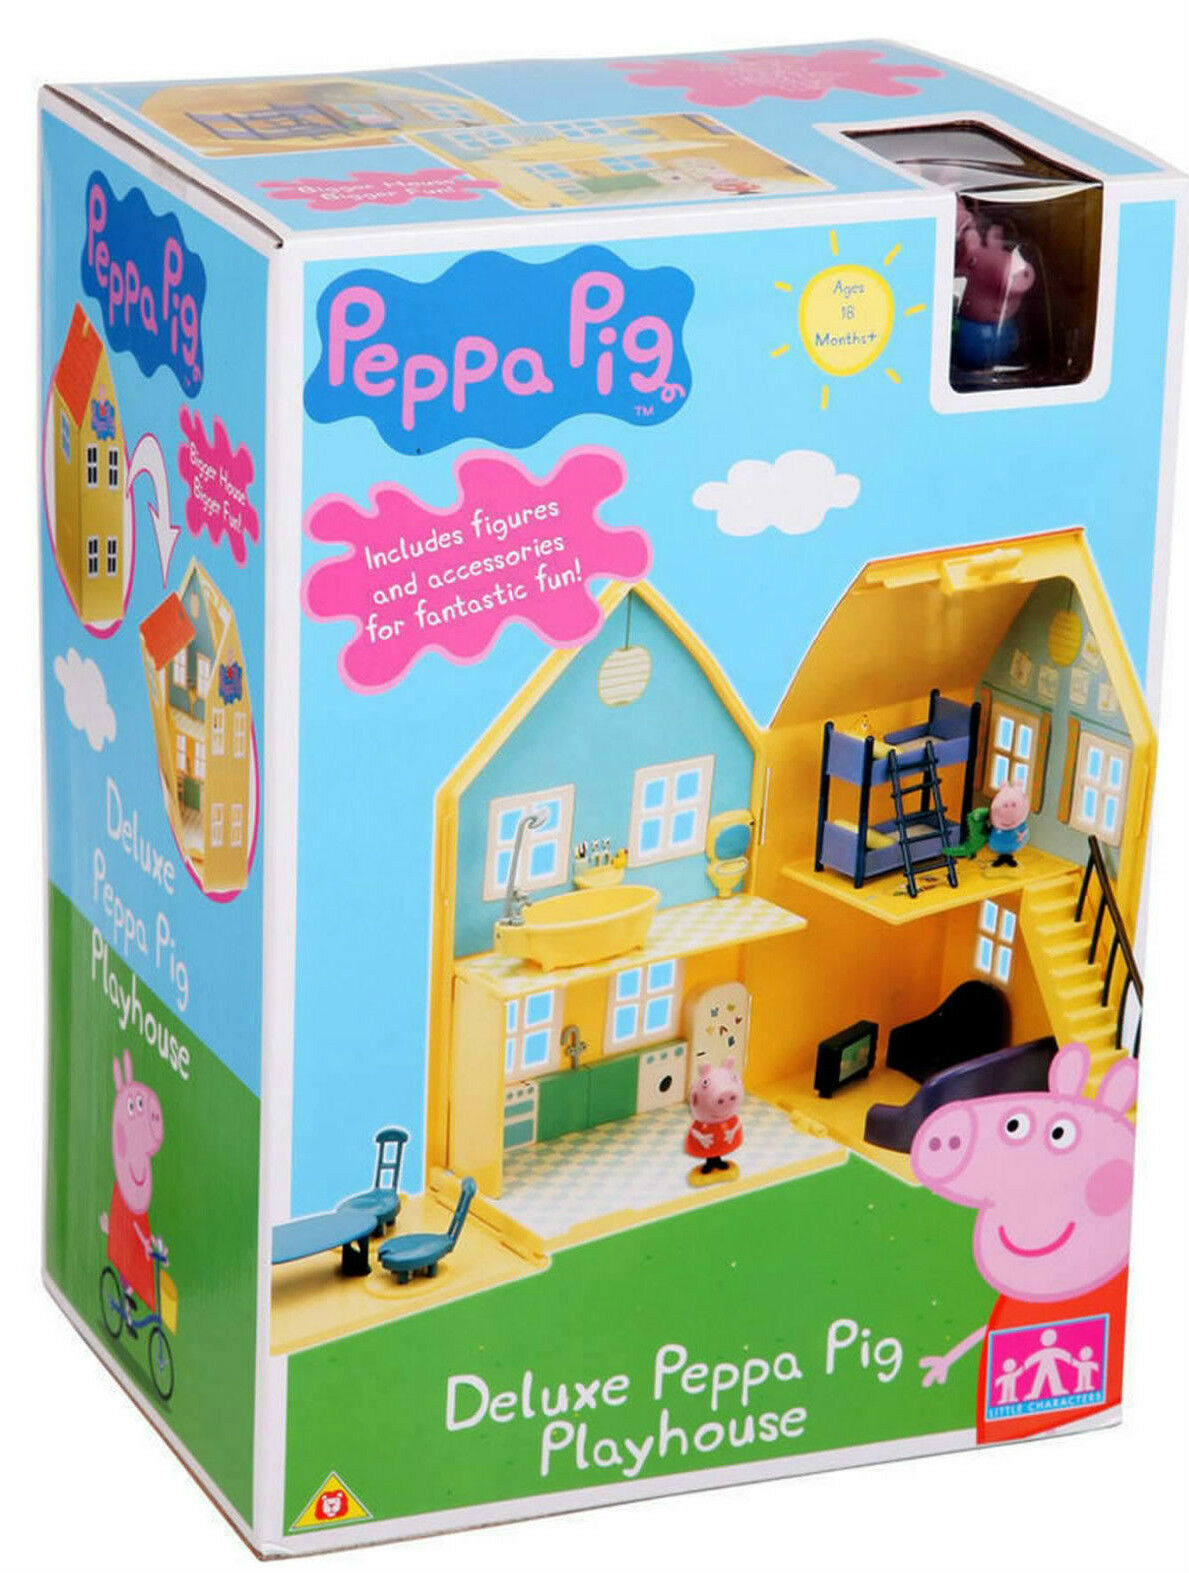 Peppa Pig - Deluxe Pig Playhouse  PURCHASE TODAY